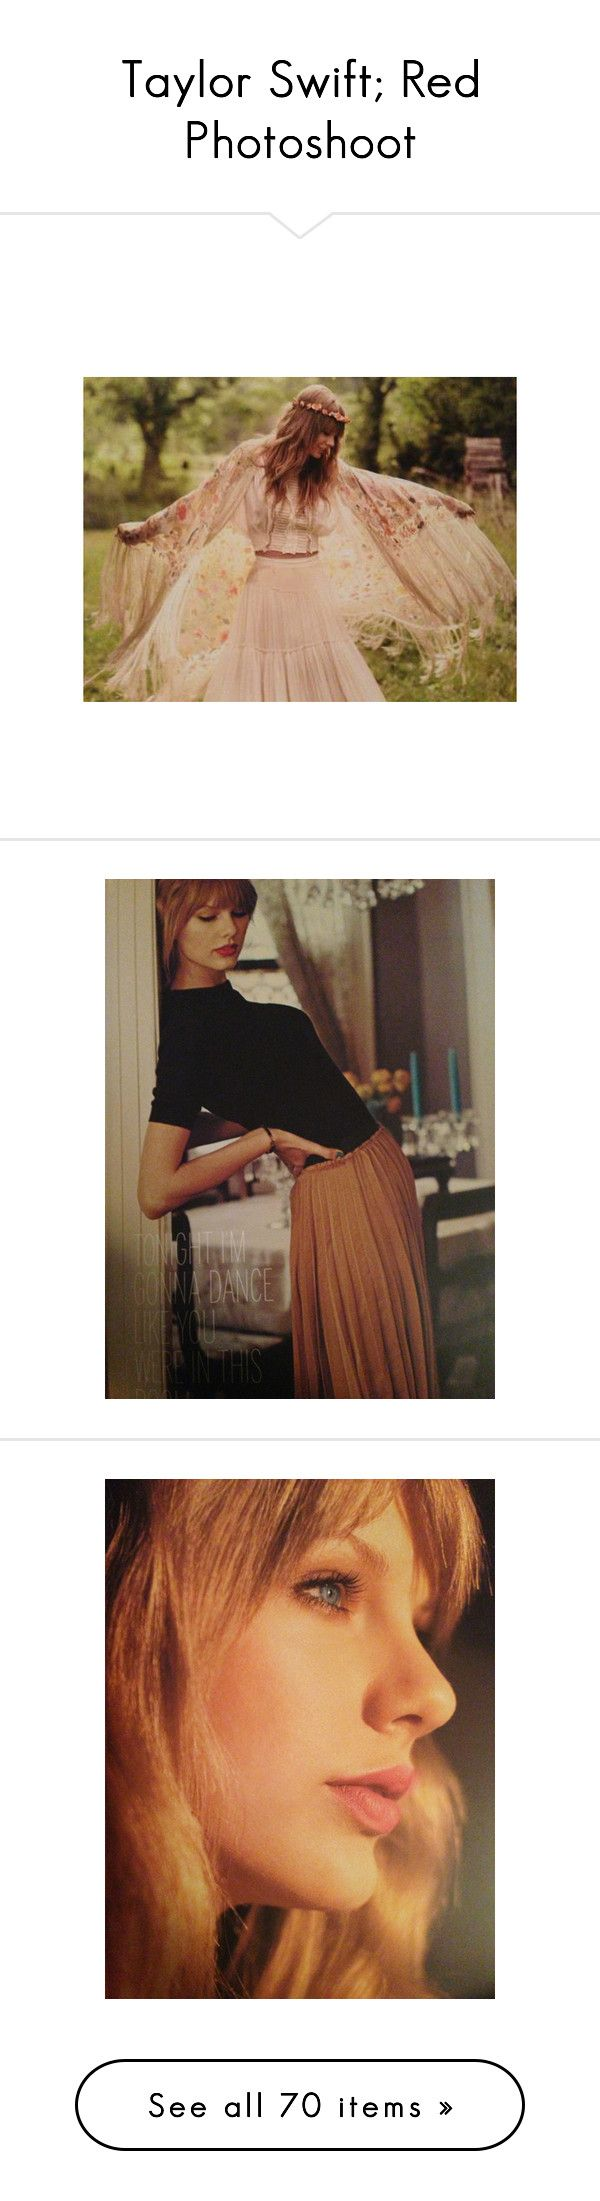 """""""Taylor Swift; Red Photoshoot"""" by flowery-fashionista ❤ liked on Polyvore featuring taylor swift, pictures, people, fantasy, photos, taylor, backgrounds, celebrity, tay and photography"""